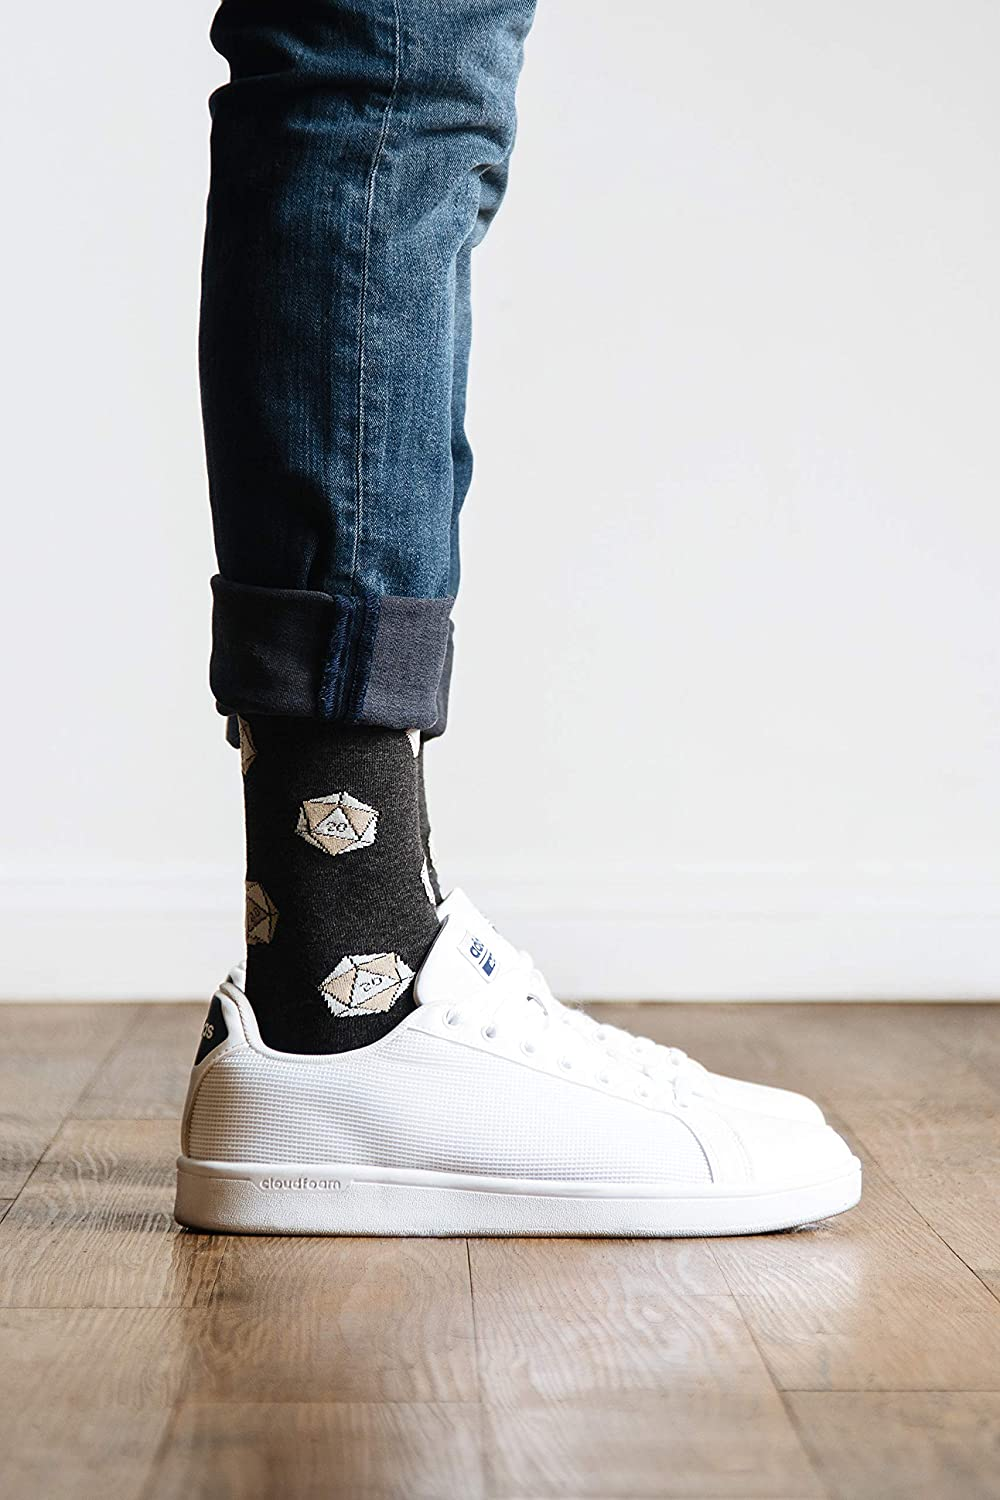 Novelty Crew Dress Socks Mens Hipster Charcoal Gray D20 Polyhedral Dice Dungeons /& Dragons D/&D DnD